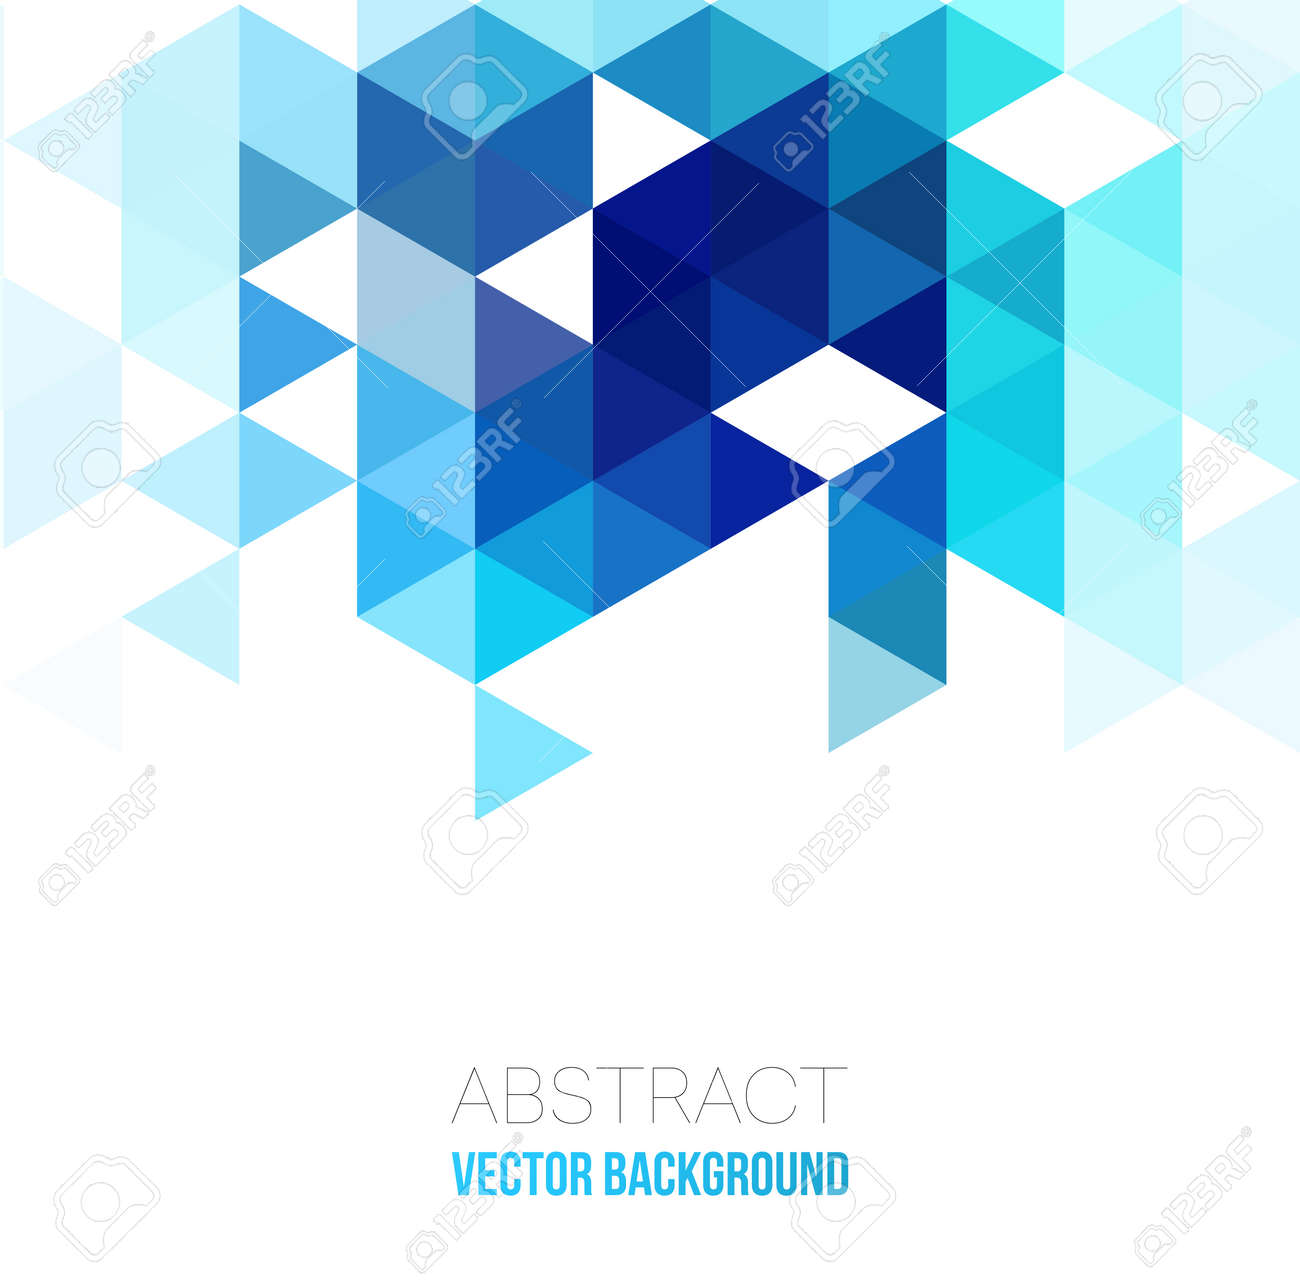 Vector Abstract Geometric Background With Triangles Vector Illustration